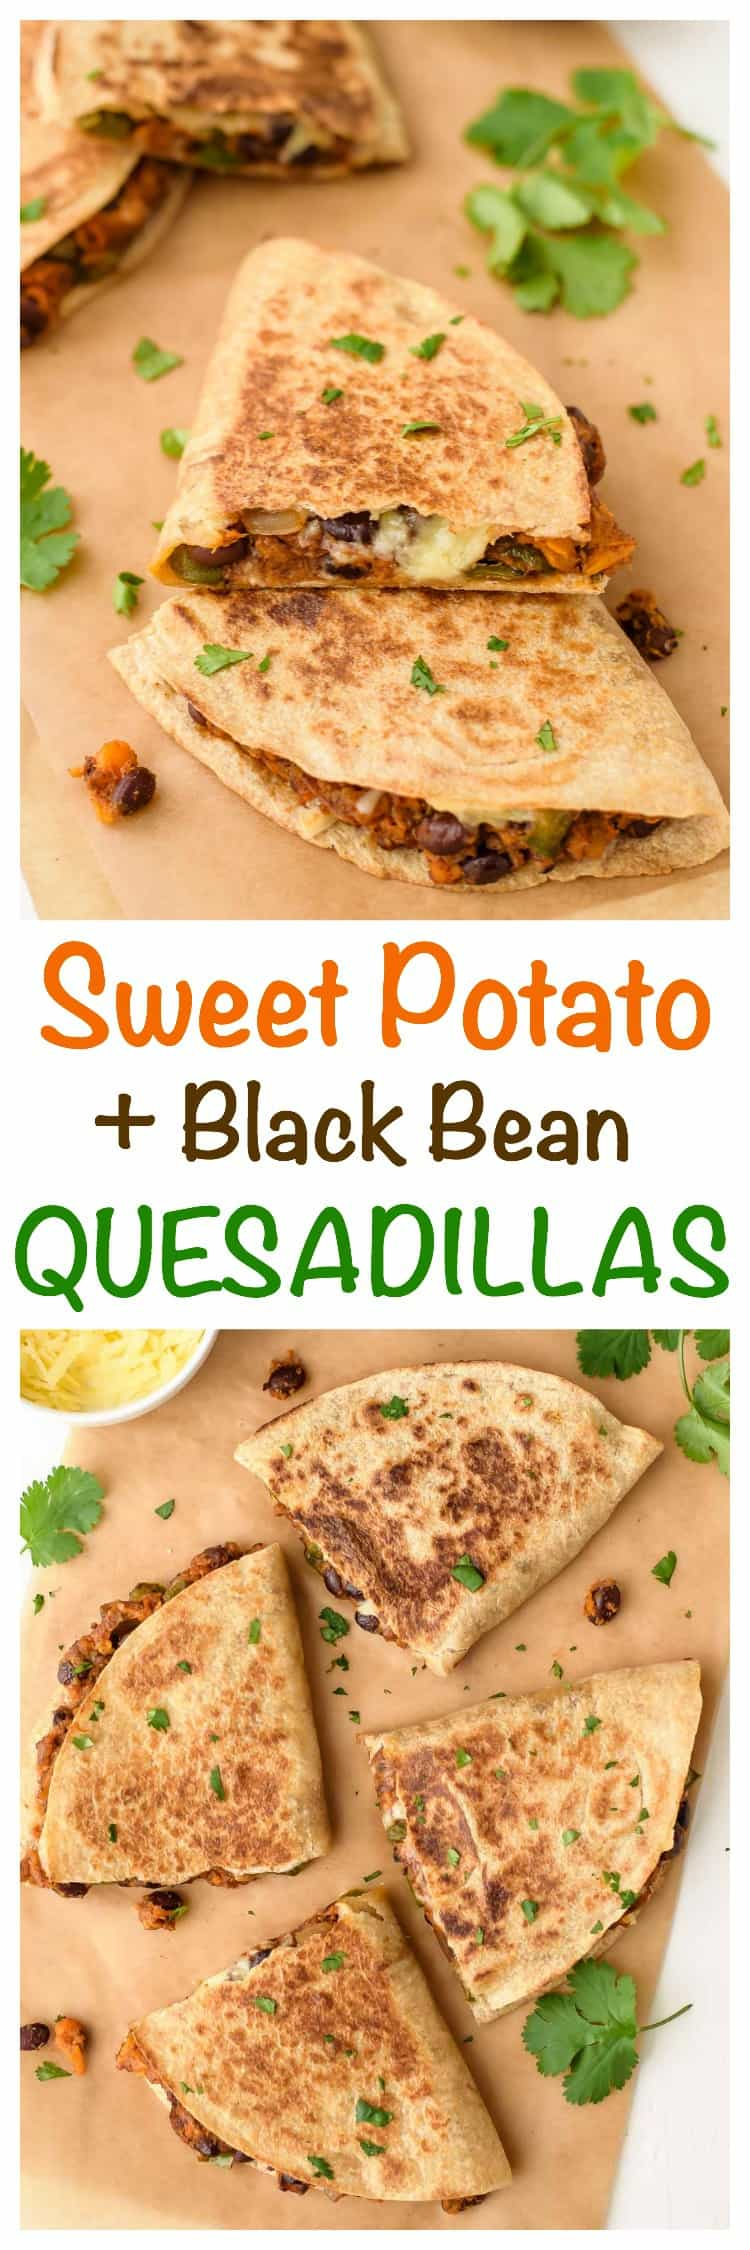 Sweet potato black bean quesadillas are a healthy, fast, vegetarian Mexican meal! Cheesy and crispy quesadillas with a sweet, smoky sweet potato and black bean filling. Even meat eaters love this easy quesadilla recipe! #Mexicanrecipes #recipe #appetizers #vegetarian #easydinner